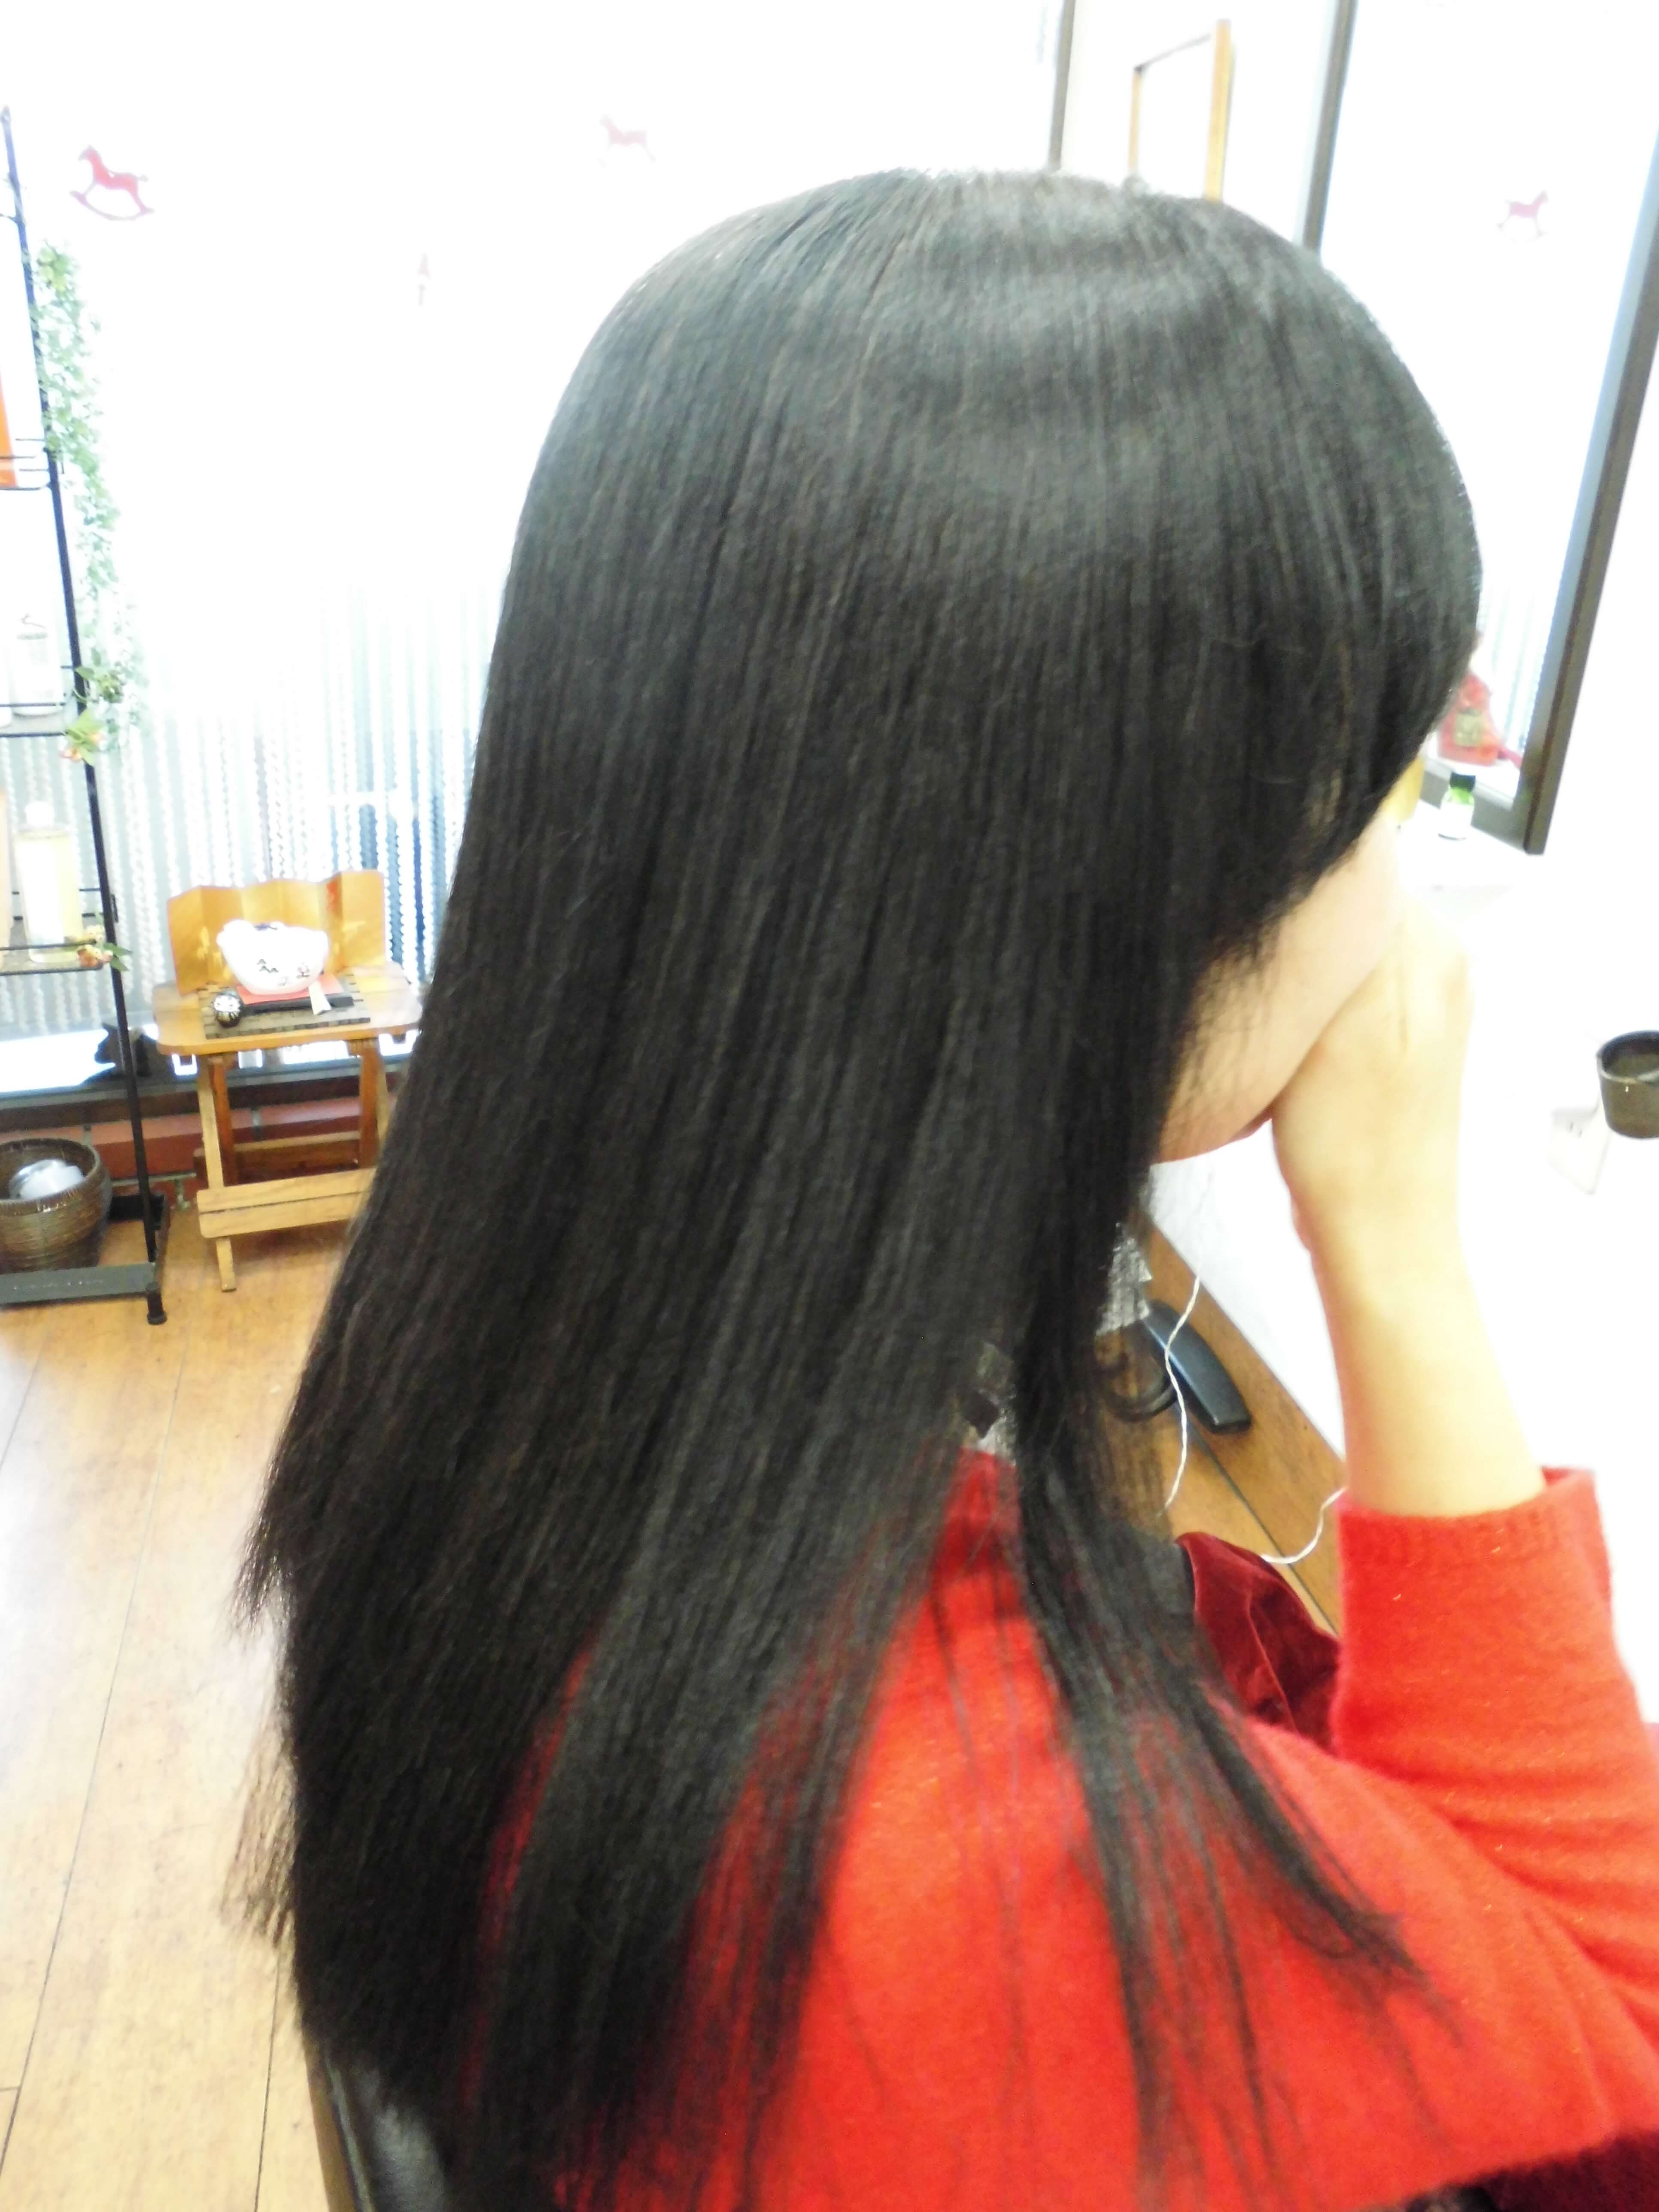 afterモデル写真